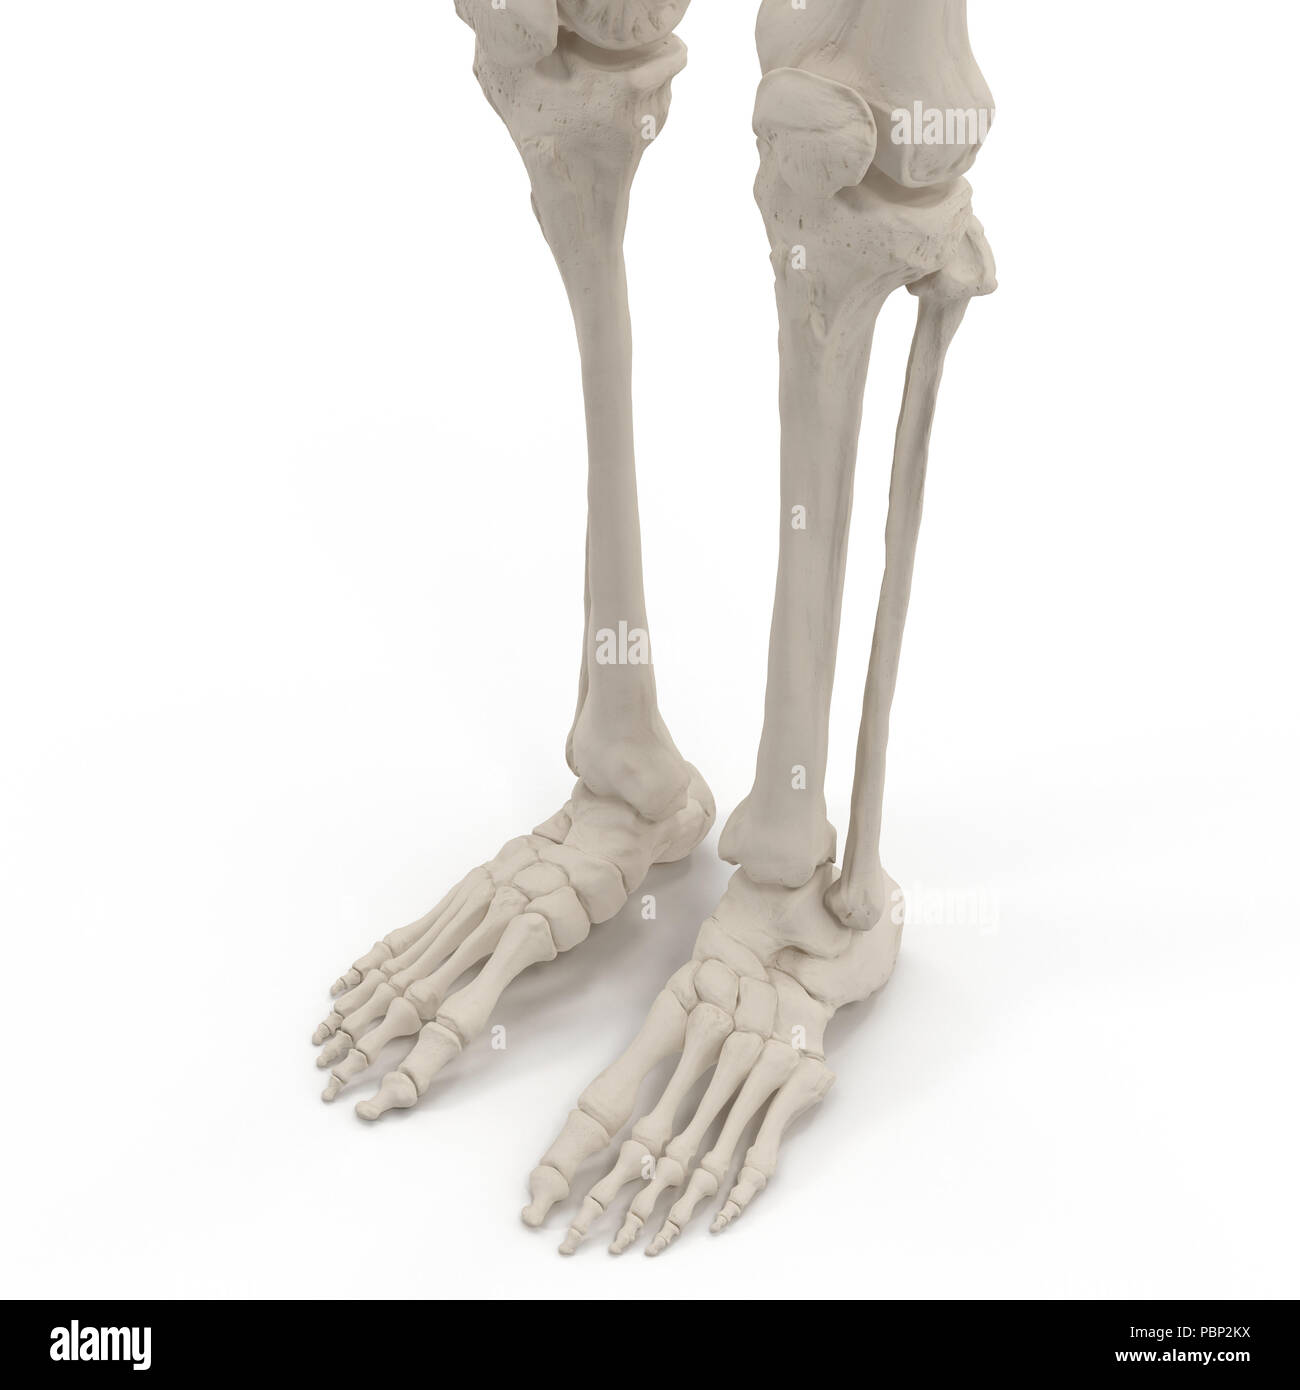 Human Legs Skeleton Bones On White 3d Illustration Stock Photo